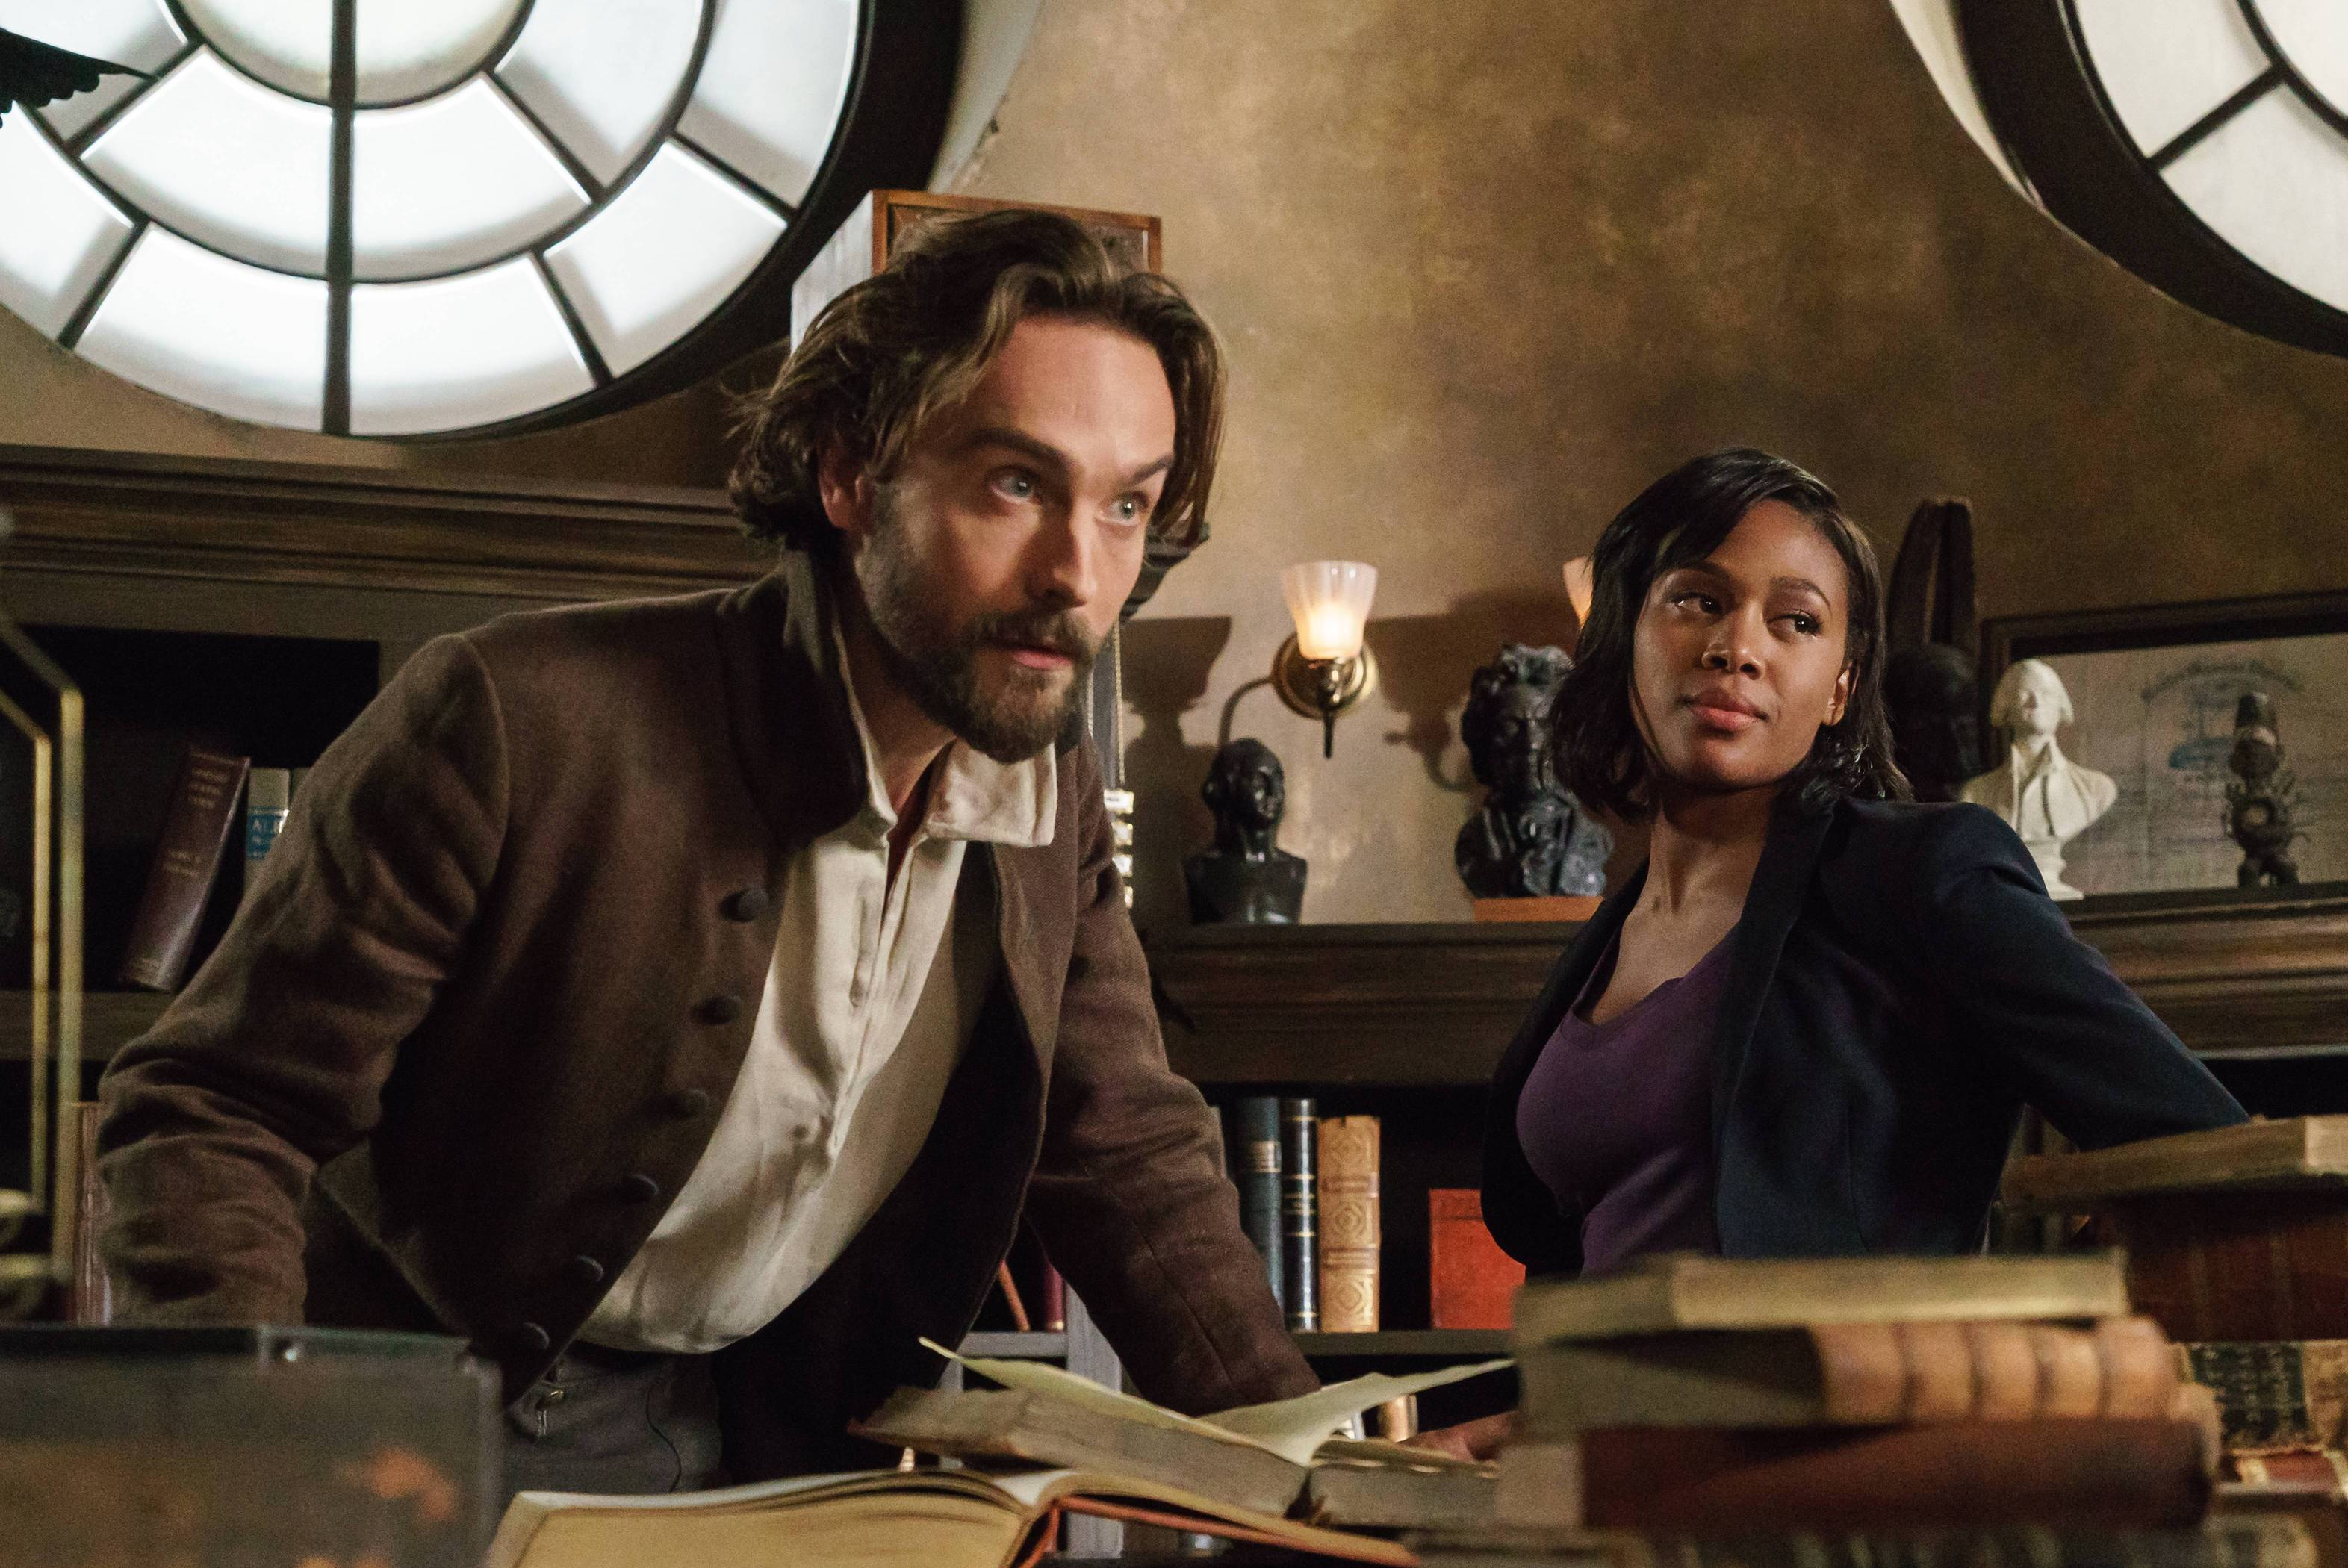 Episode 299: Sleepy Hollow - S3E4 - The Sisters Mills